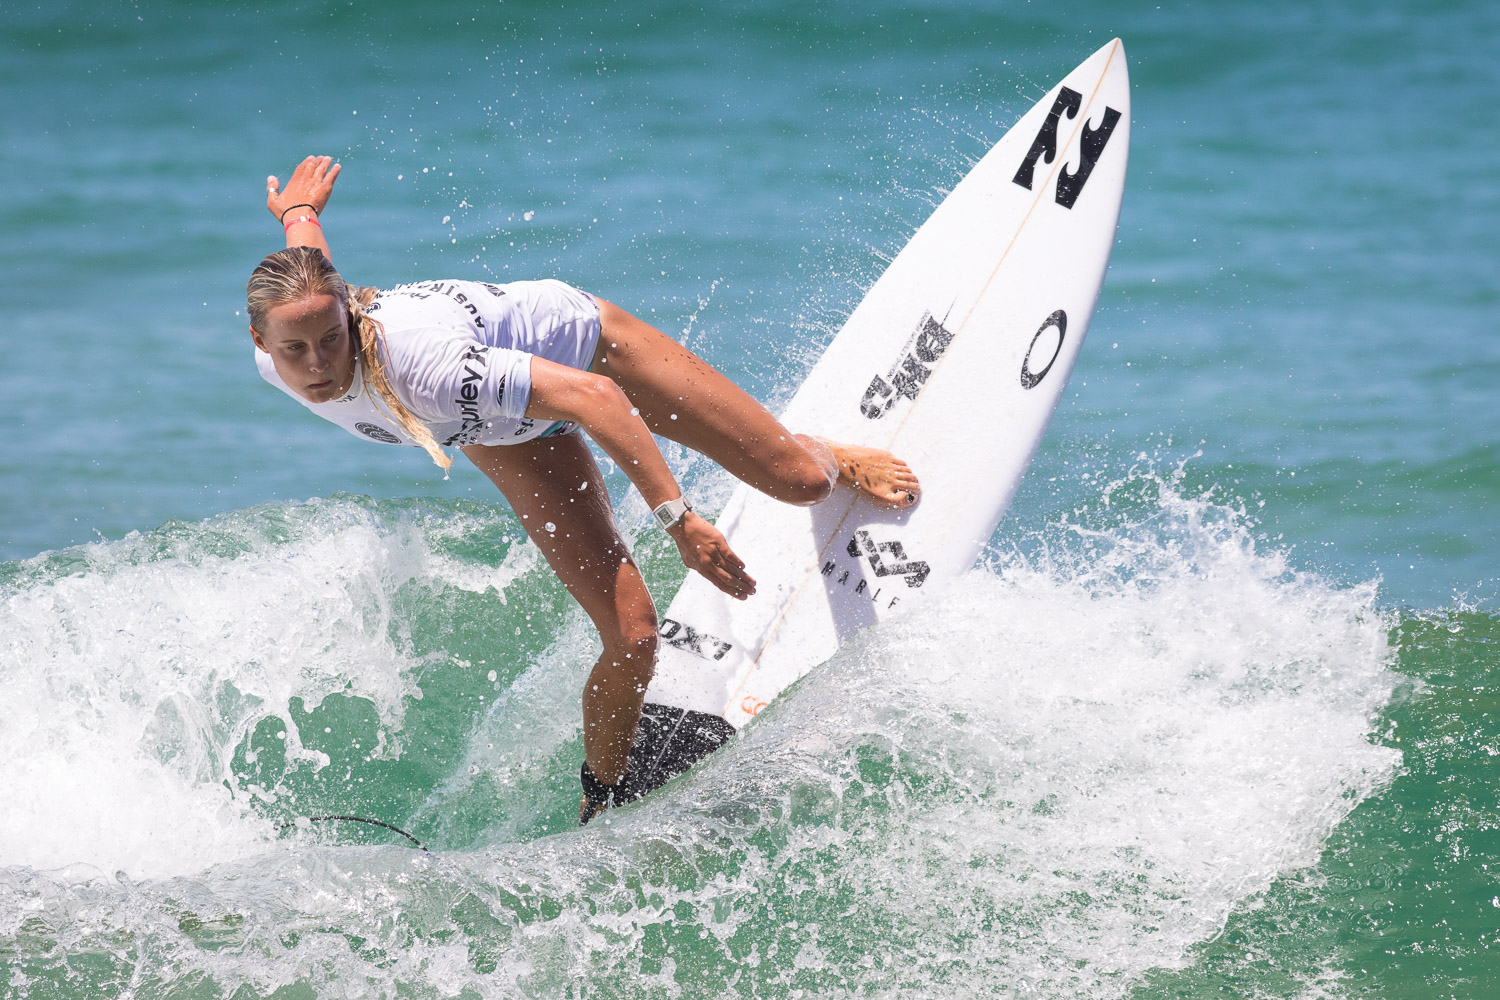 Isabella Nichols, on her way to winning the junior title.